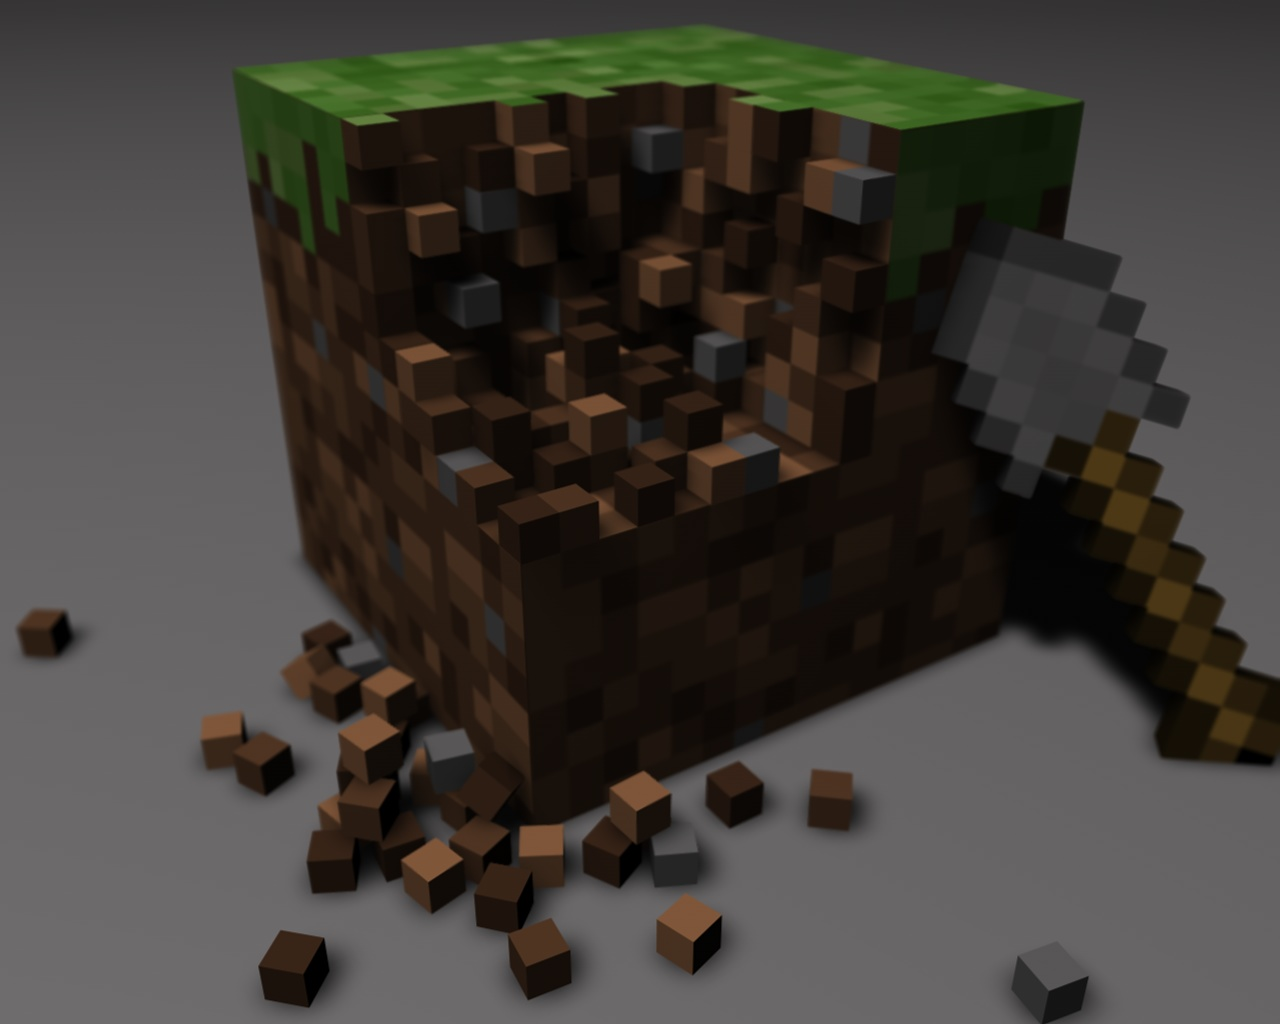 Minecraft Wallpapers BackgroundsBest Wallpapers HD Backgrounds 1280x1024